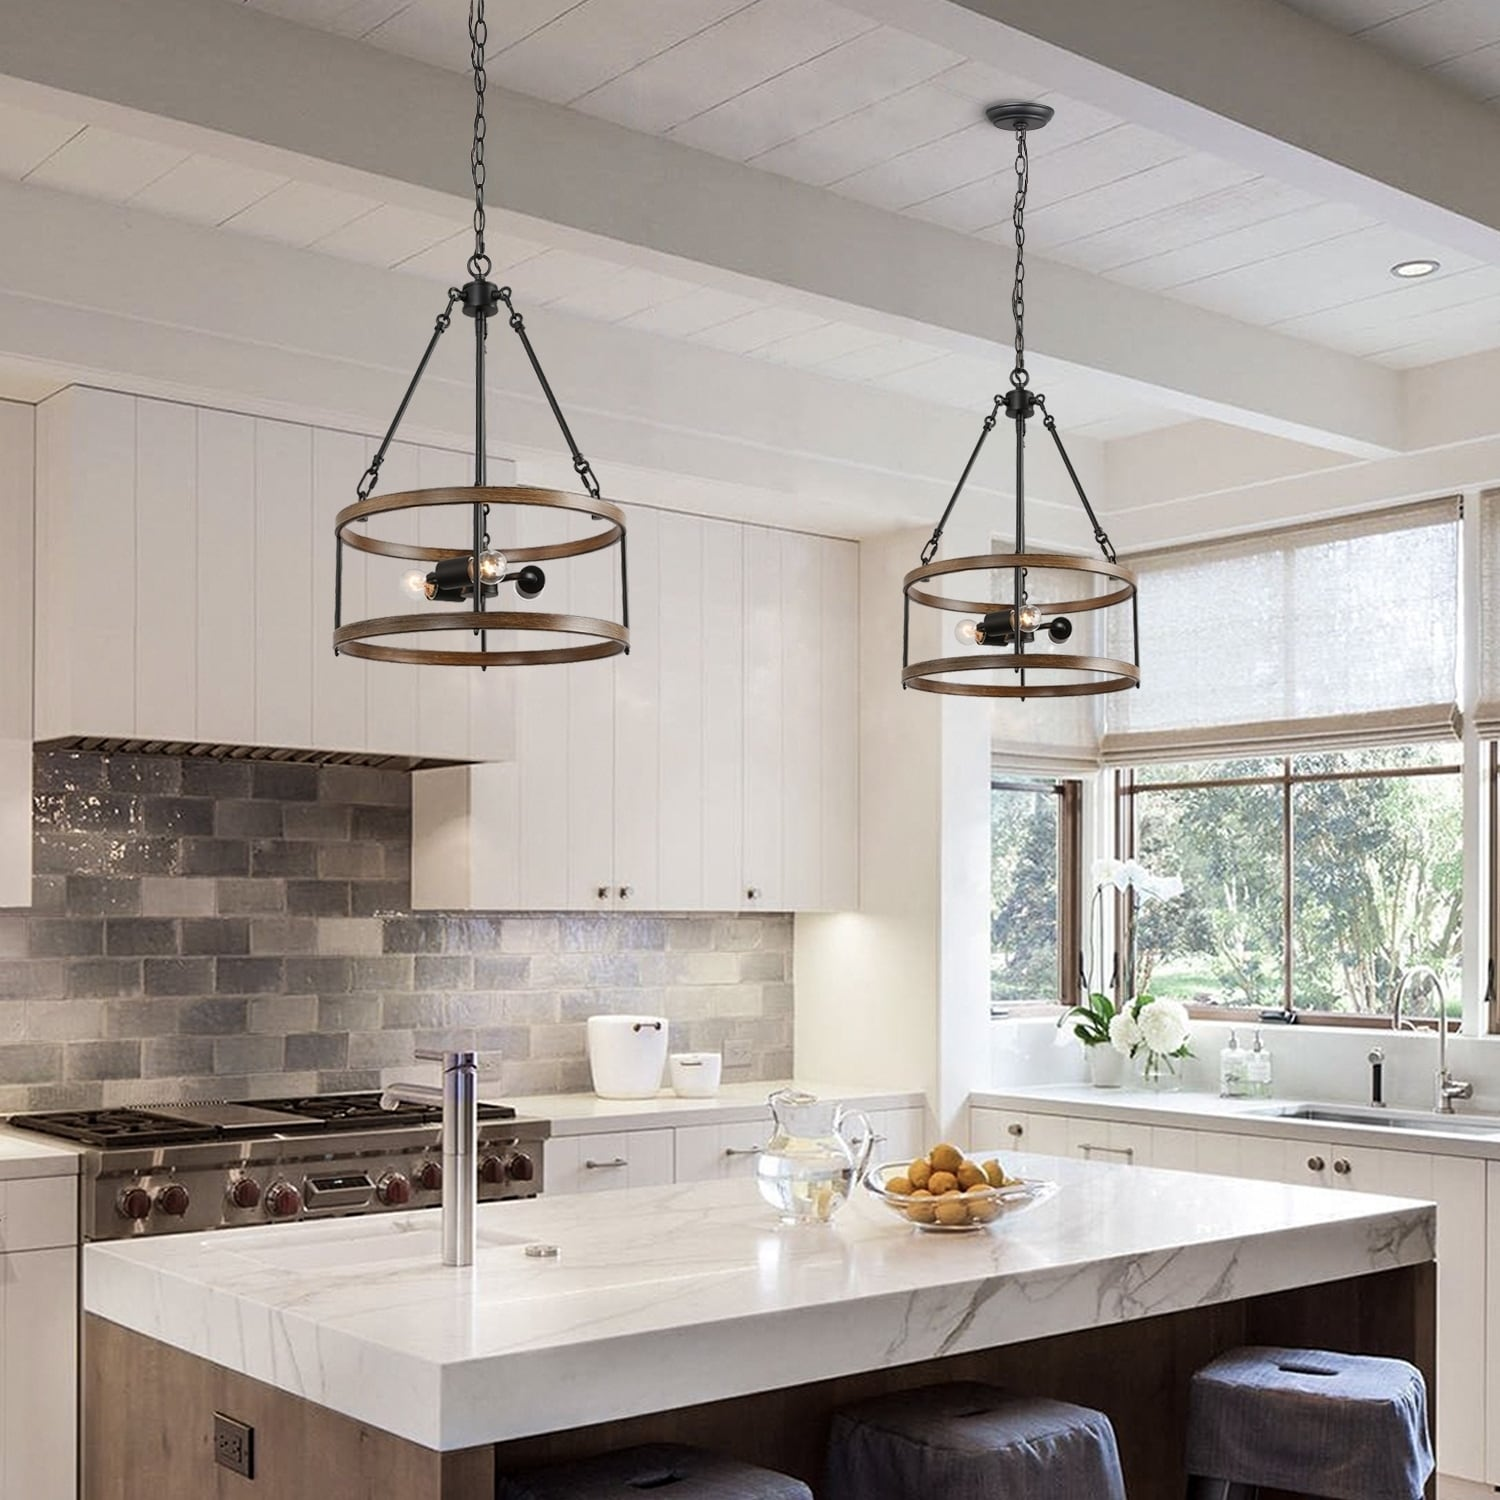 Shop Black Friday Deals On Lnc Farmhouse Mini Chandelier Lighting Kitchen Lighting With Drum Frame W15 8 X H22 8 Overstock 29083508